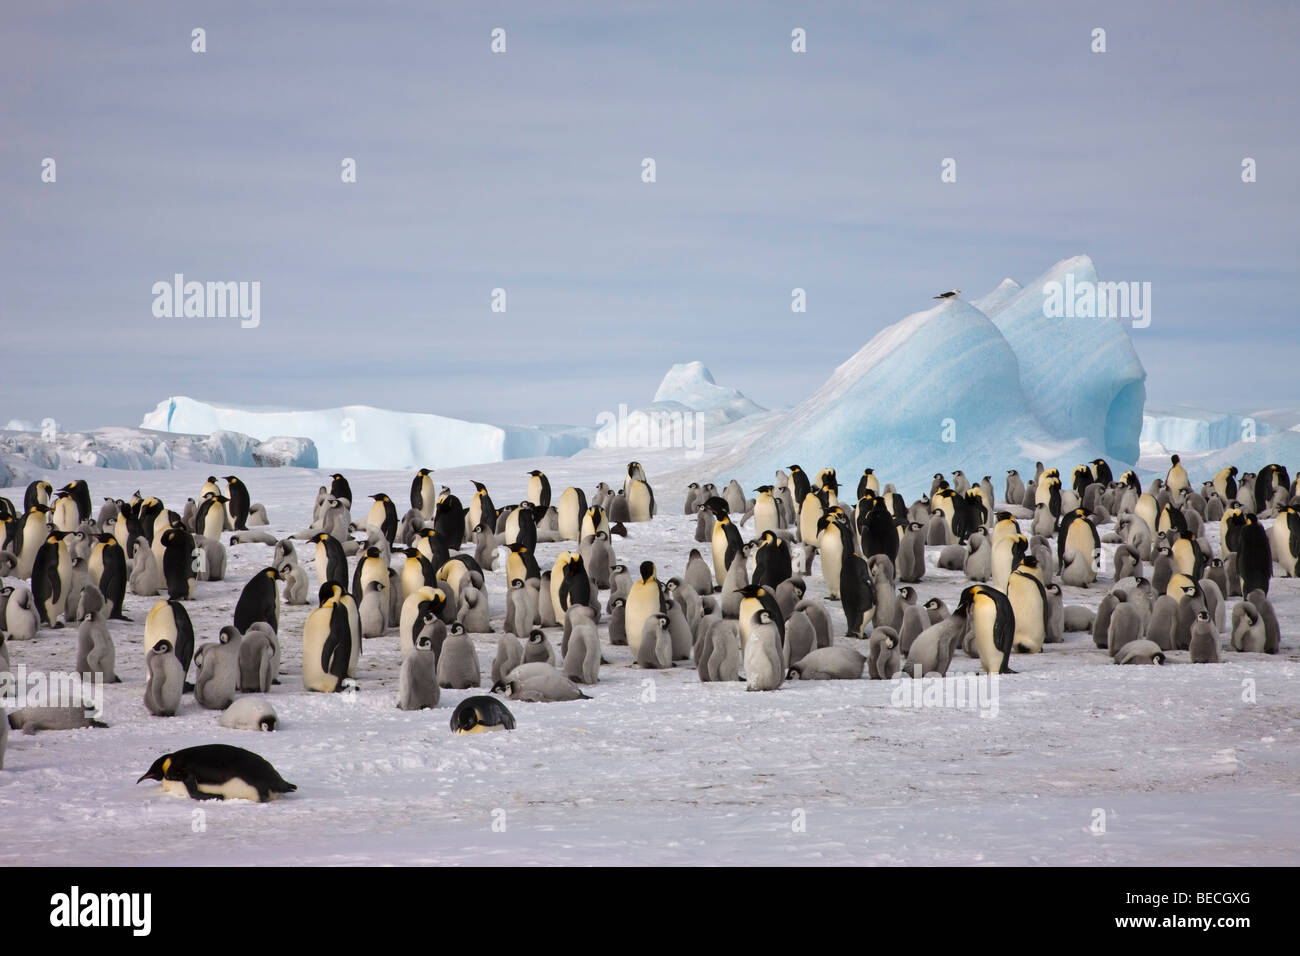 Big breeding colony of Emperor penguins, big rookery with adults and babies on snow ice, blue iceberg background - Stock Image